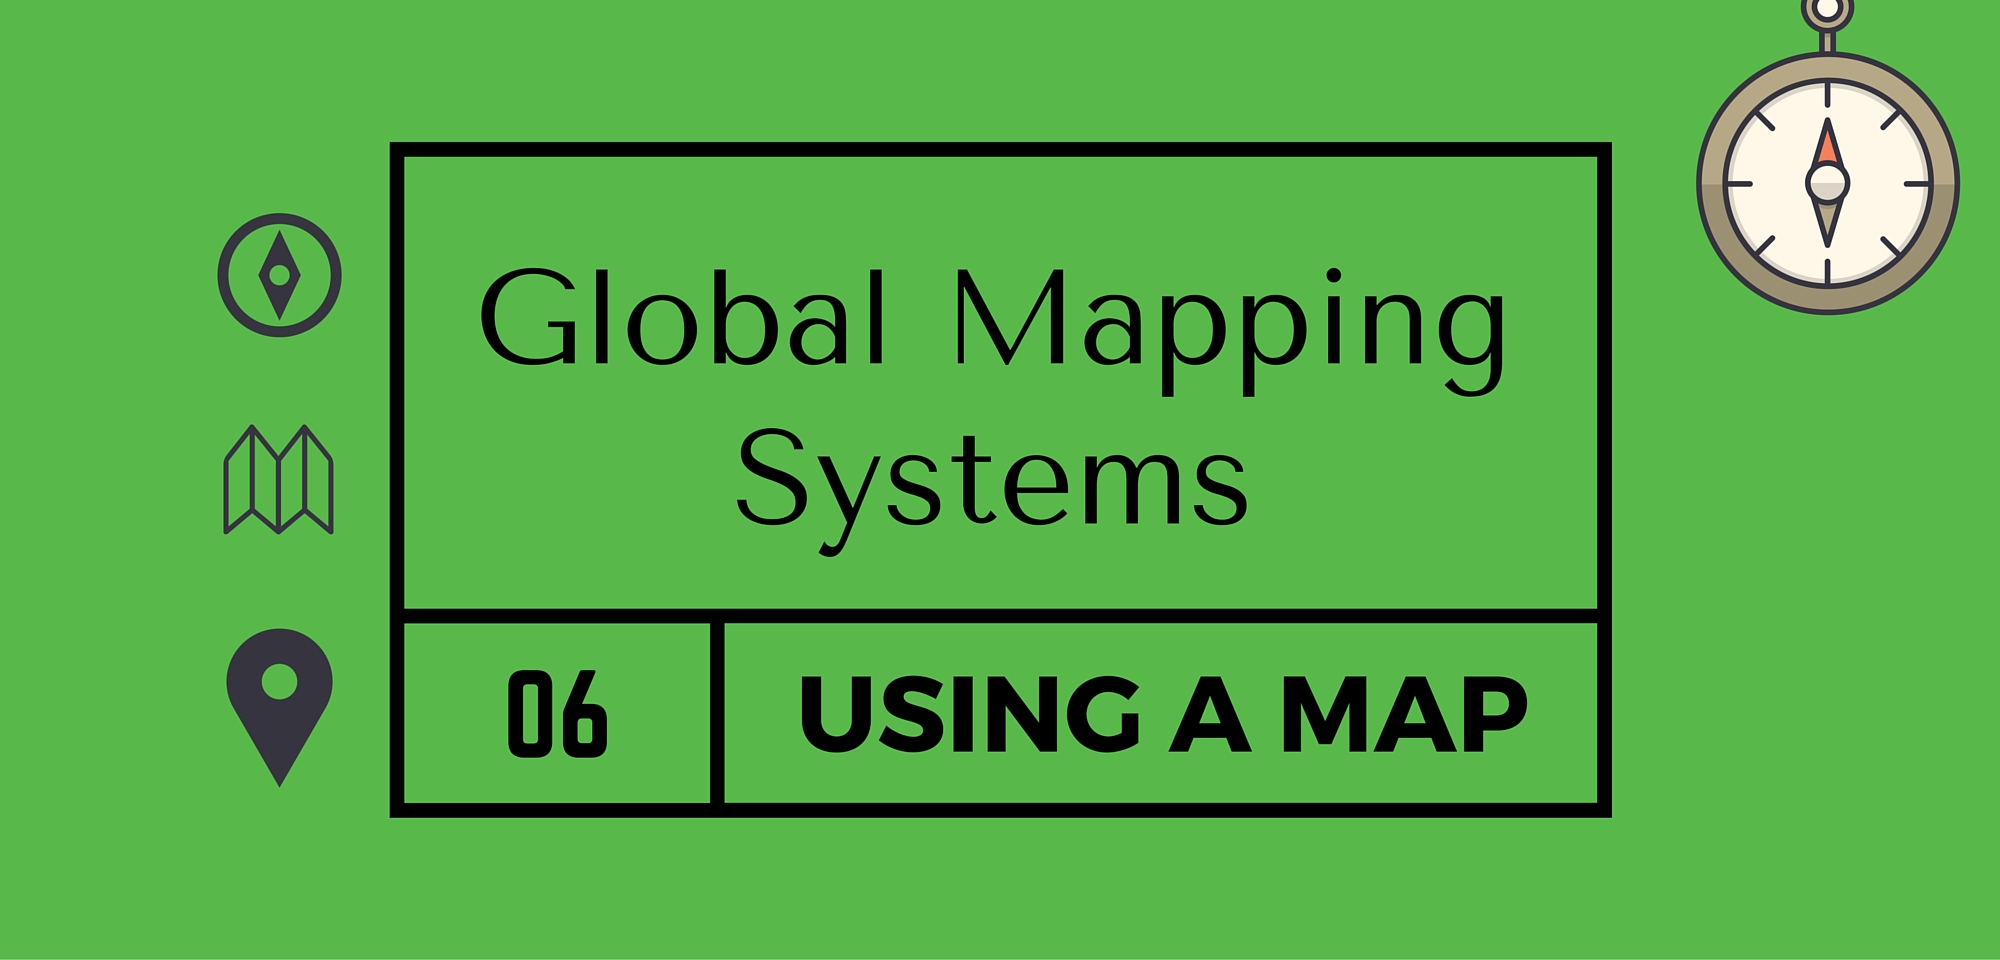 Global Mapping Systems